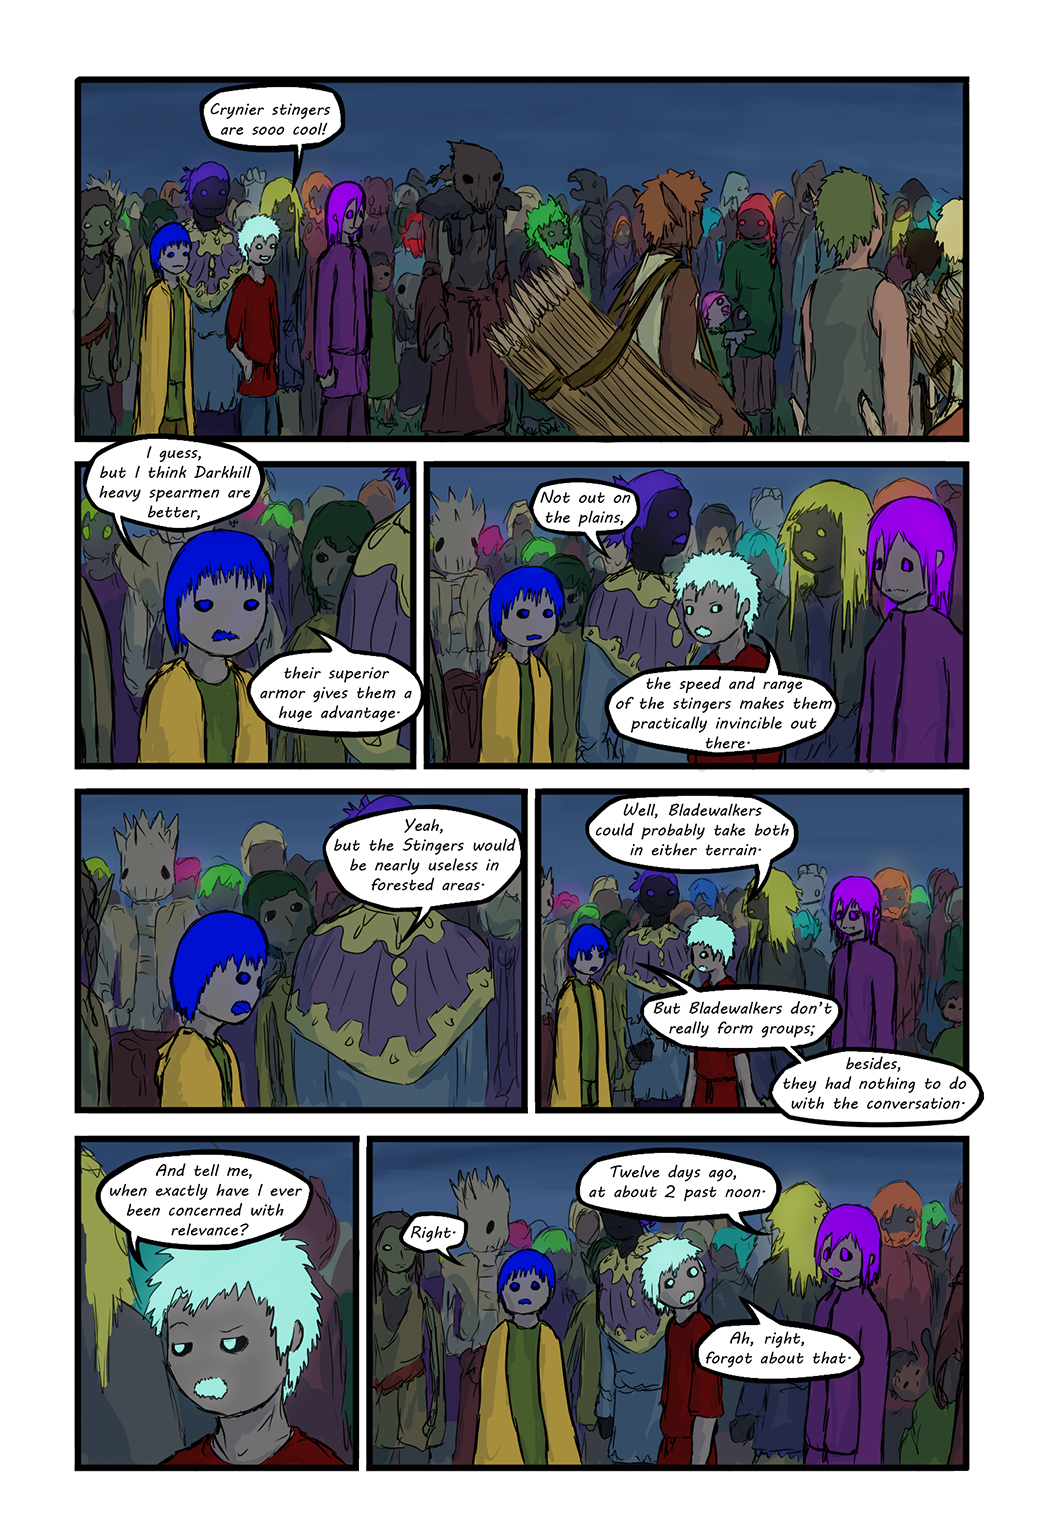 The Great Fireflood Page 51